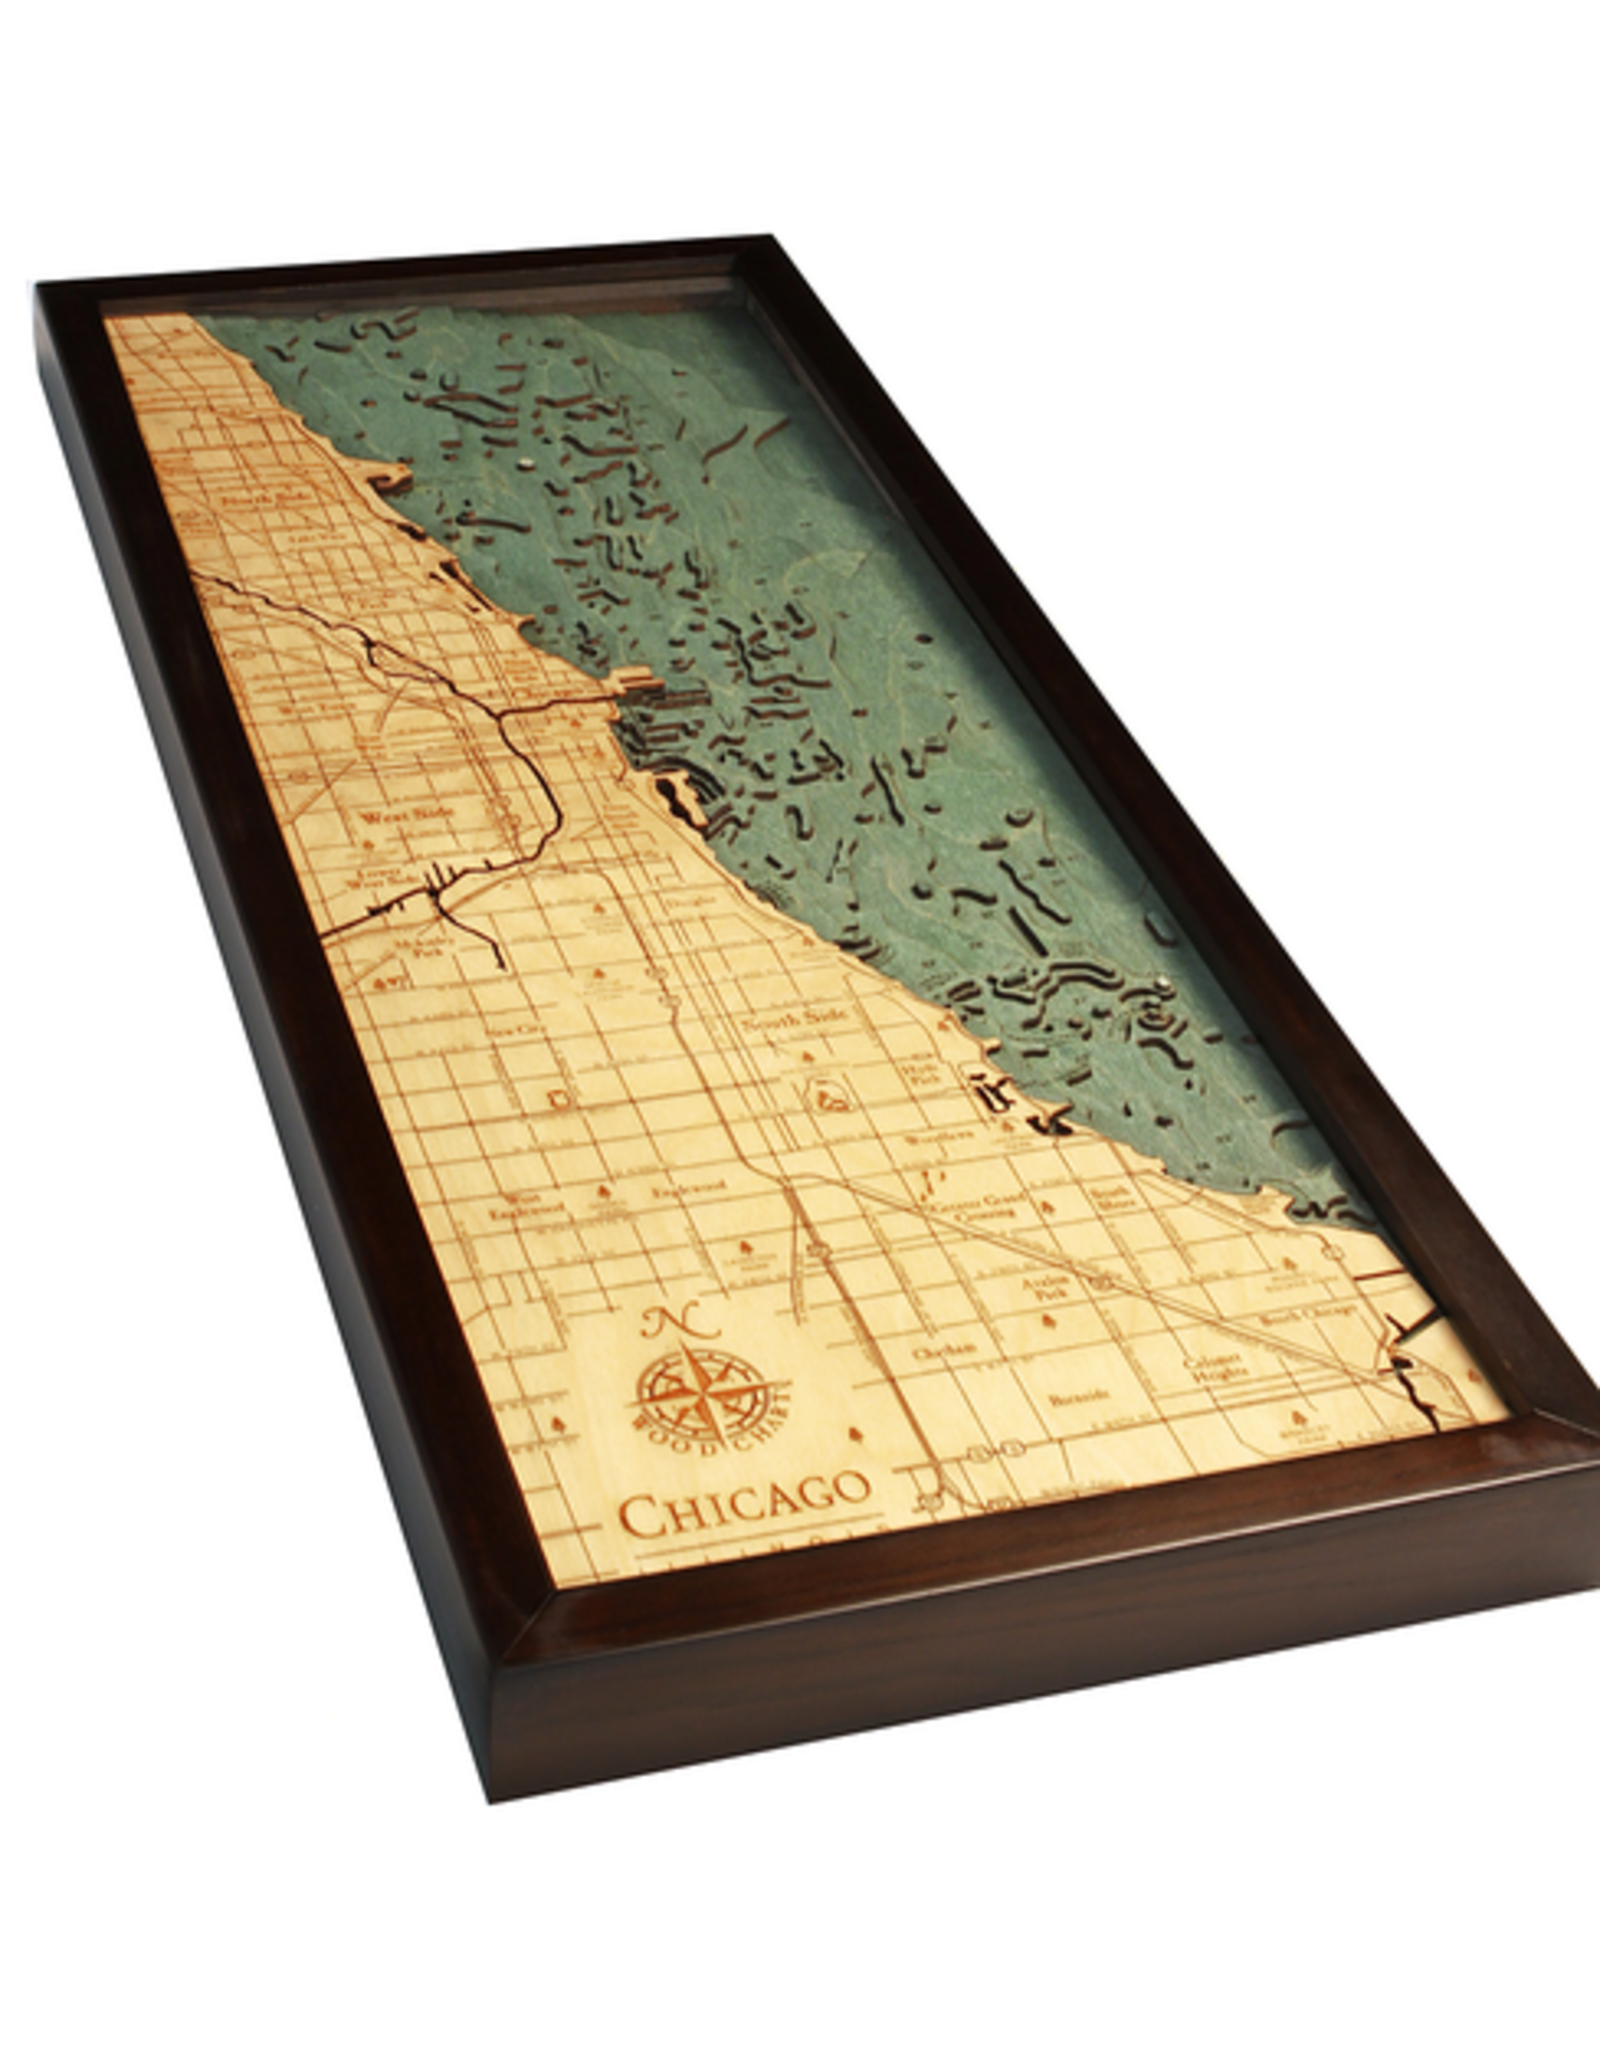 WoodCharts Chicago (Bathymetric 3-D Wood Carved Nautical Chart)